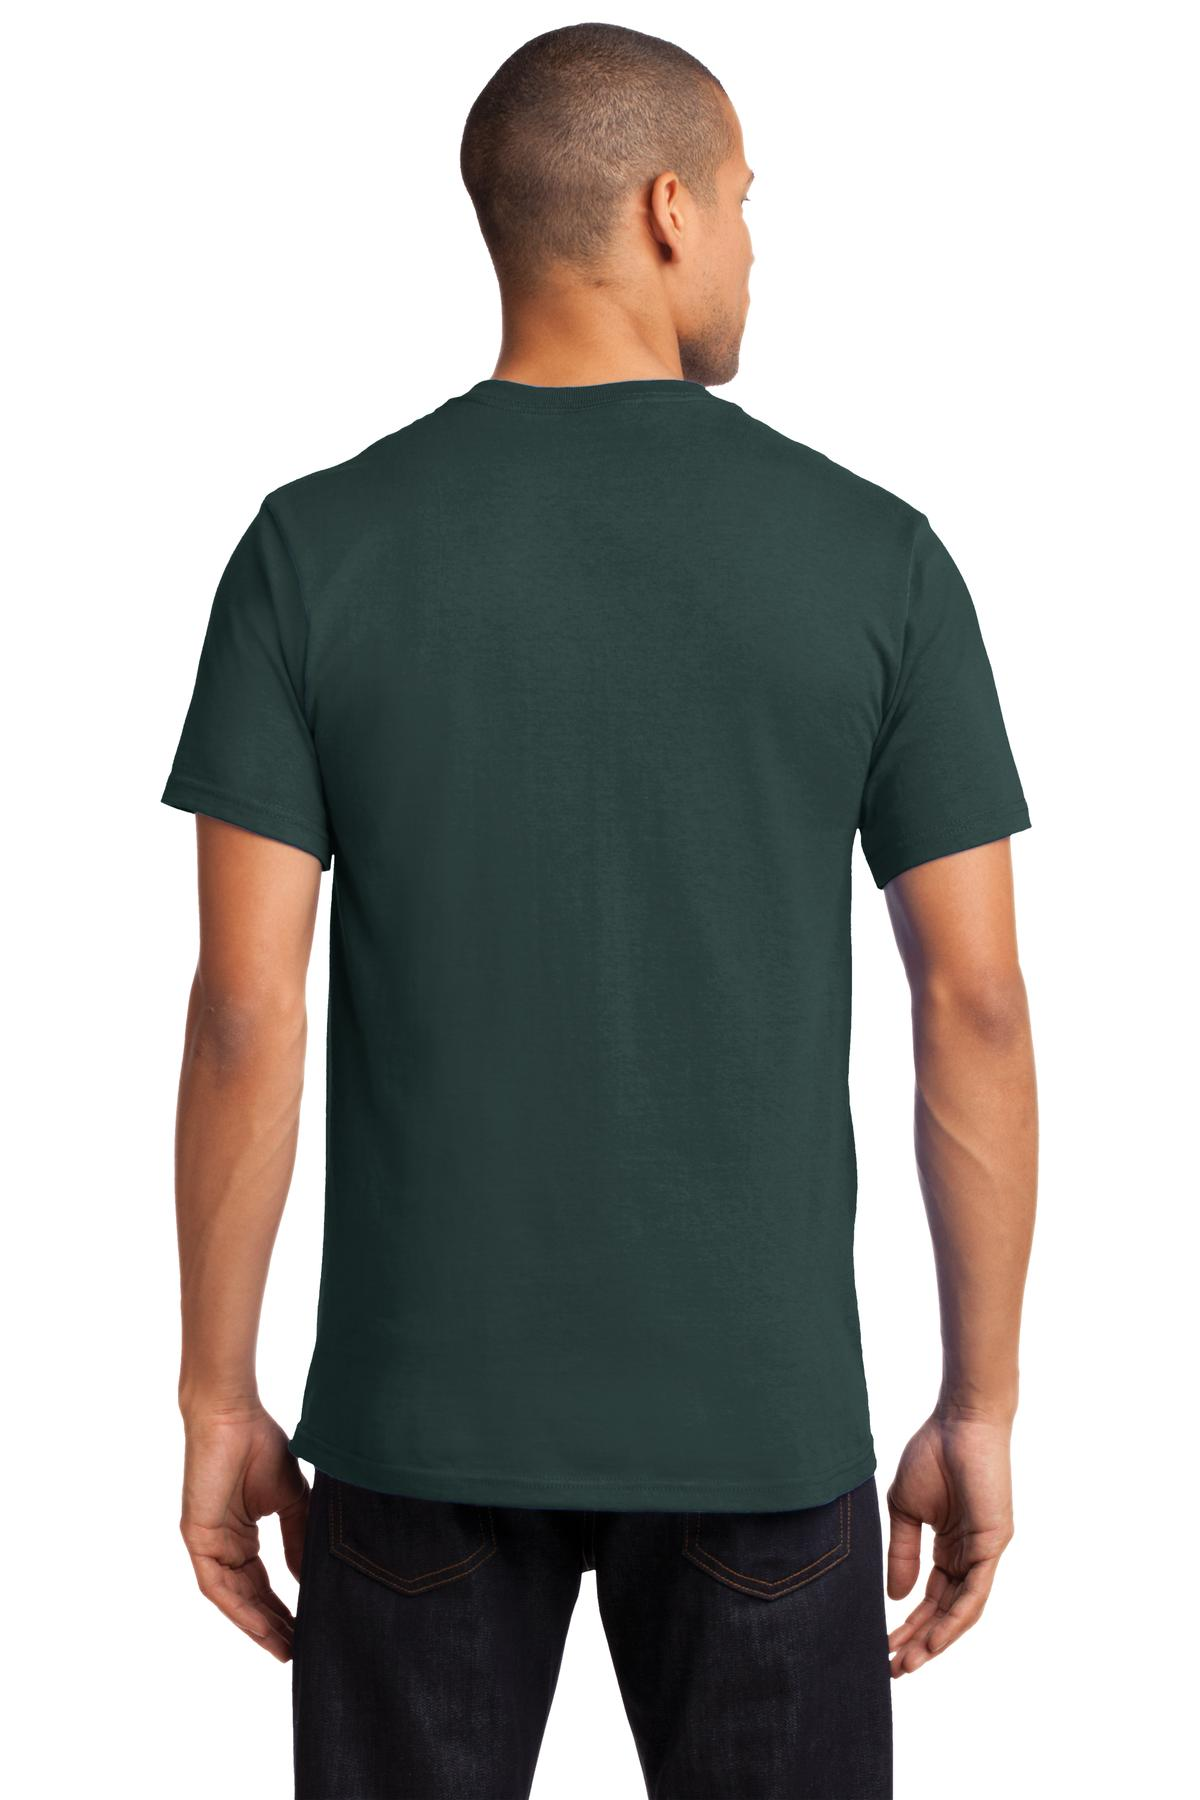 Port-amp-Company-Tall-Essential-TShirt-with-Pocket-PC61PT-Size-LT-4XLT thumbnail 14